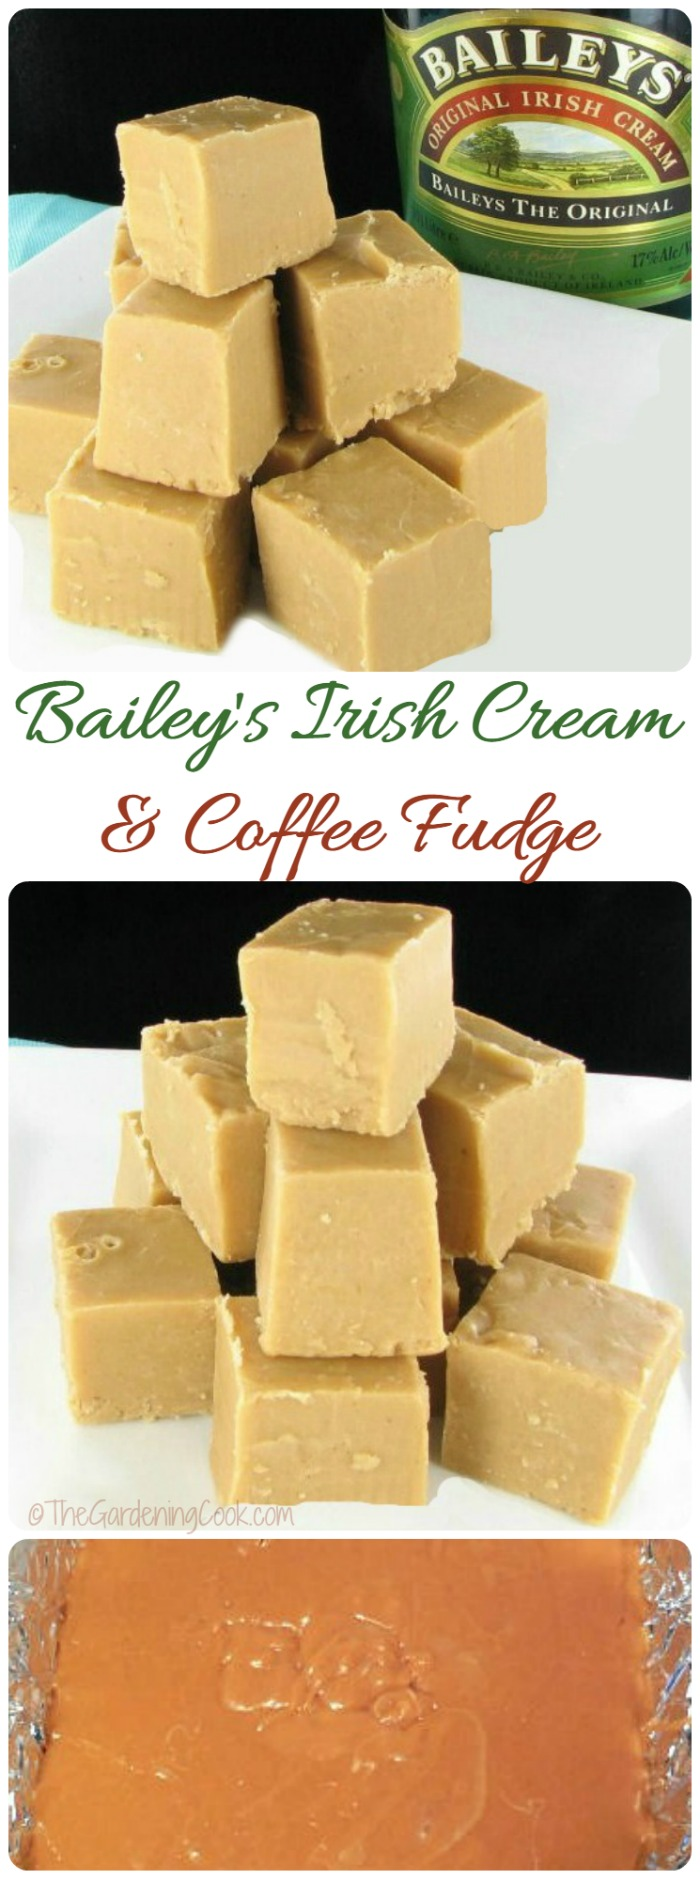 This Irish Cream fudge is the perfect sweet treat for your holiday table. It is made with Bailey's Irish cream and coffee. It is delicious and so easy to make, too.